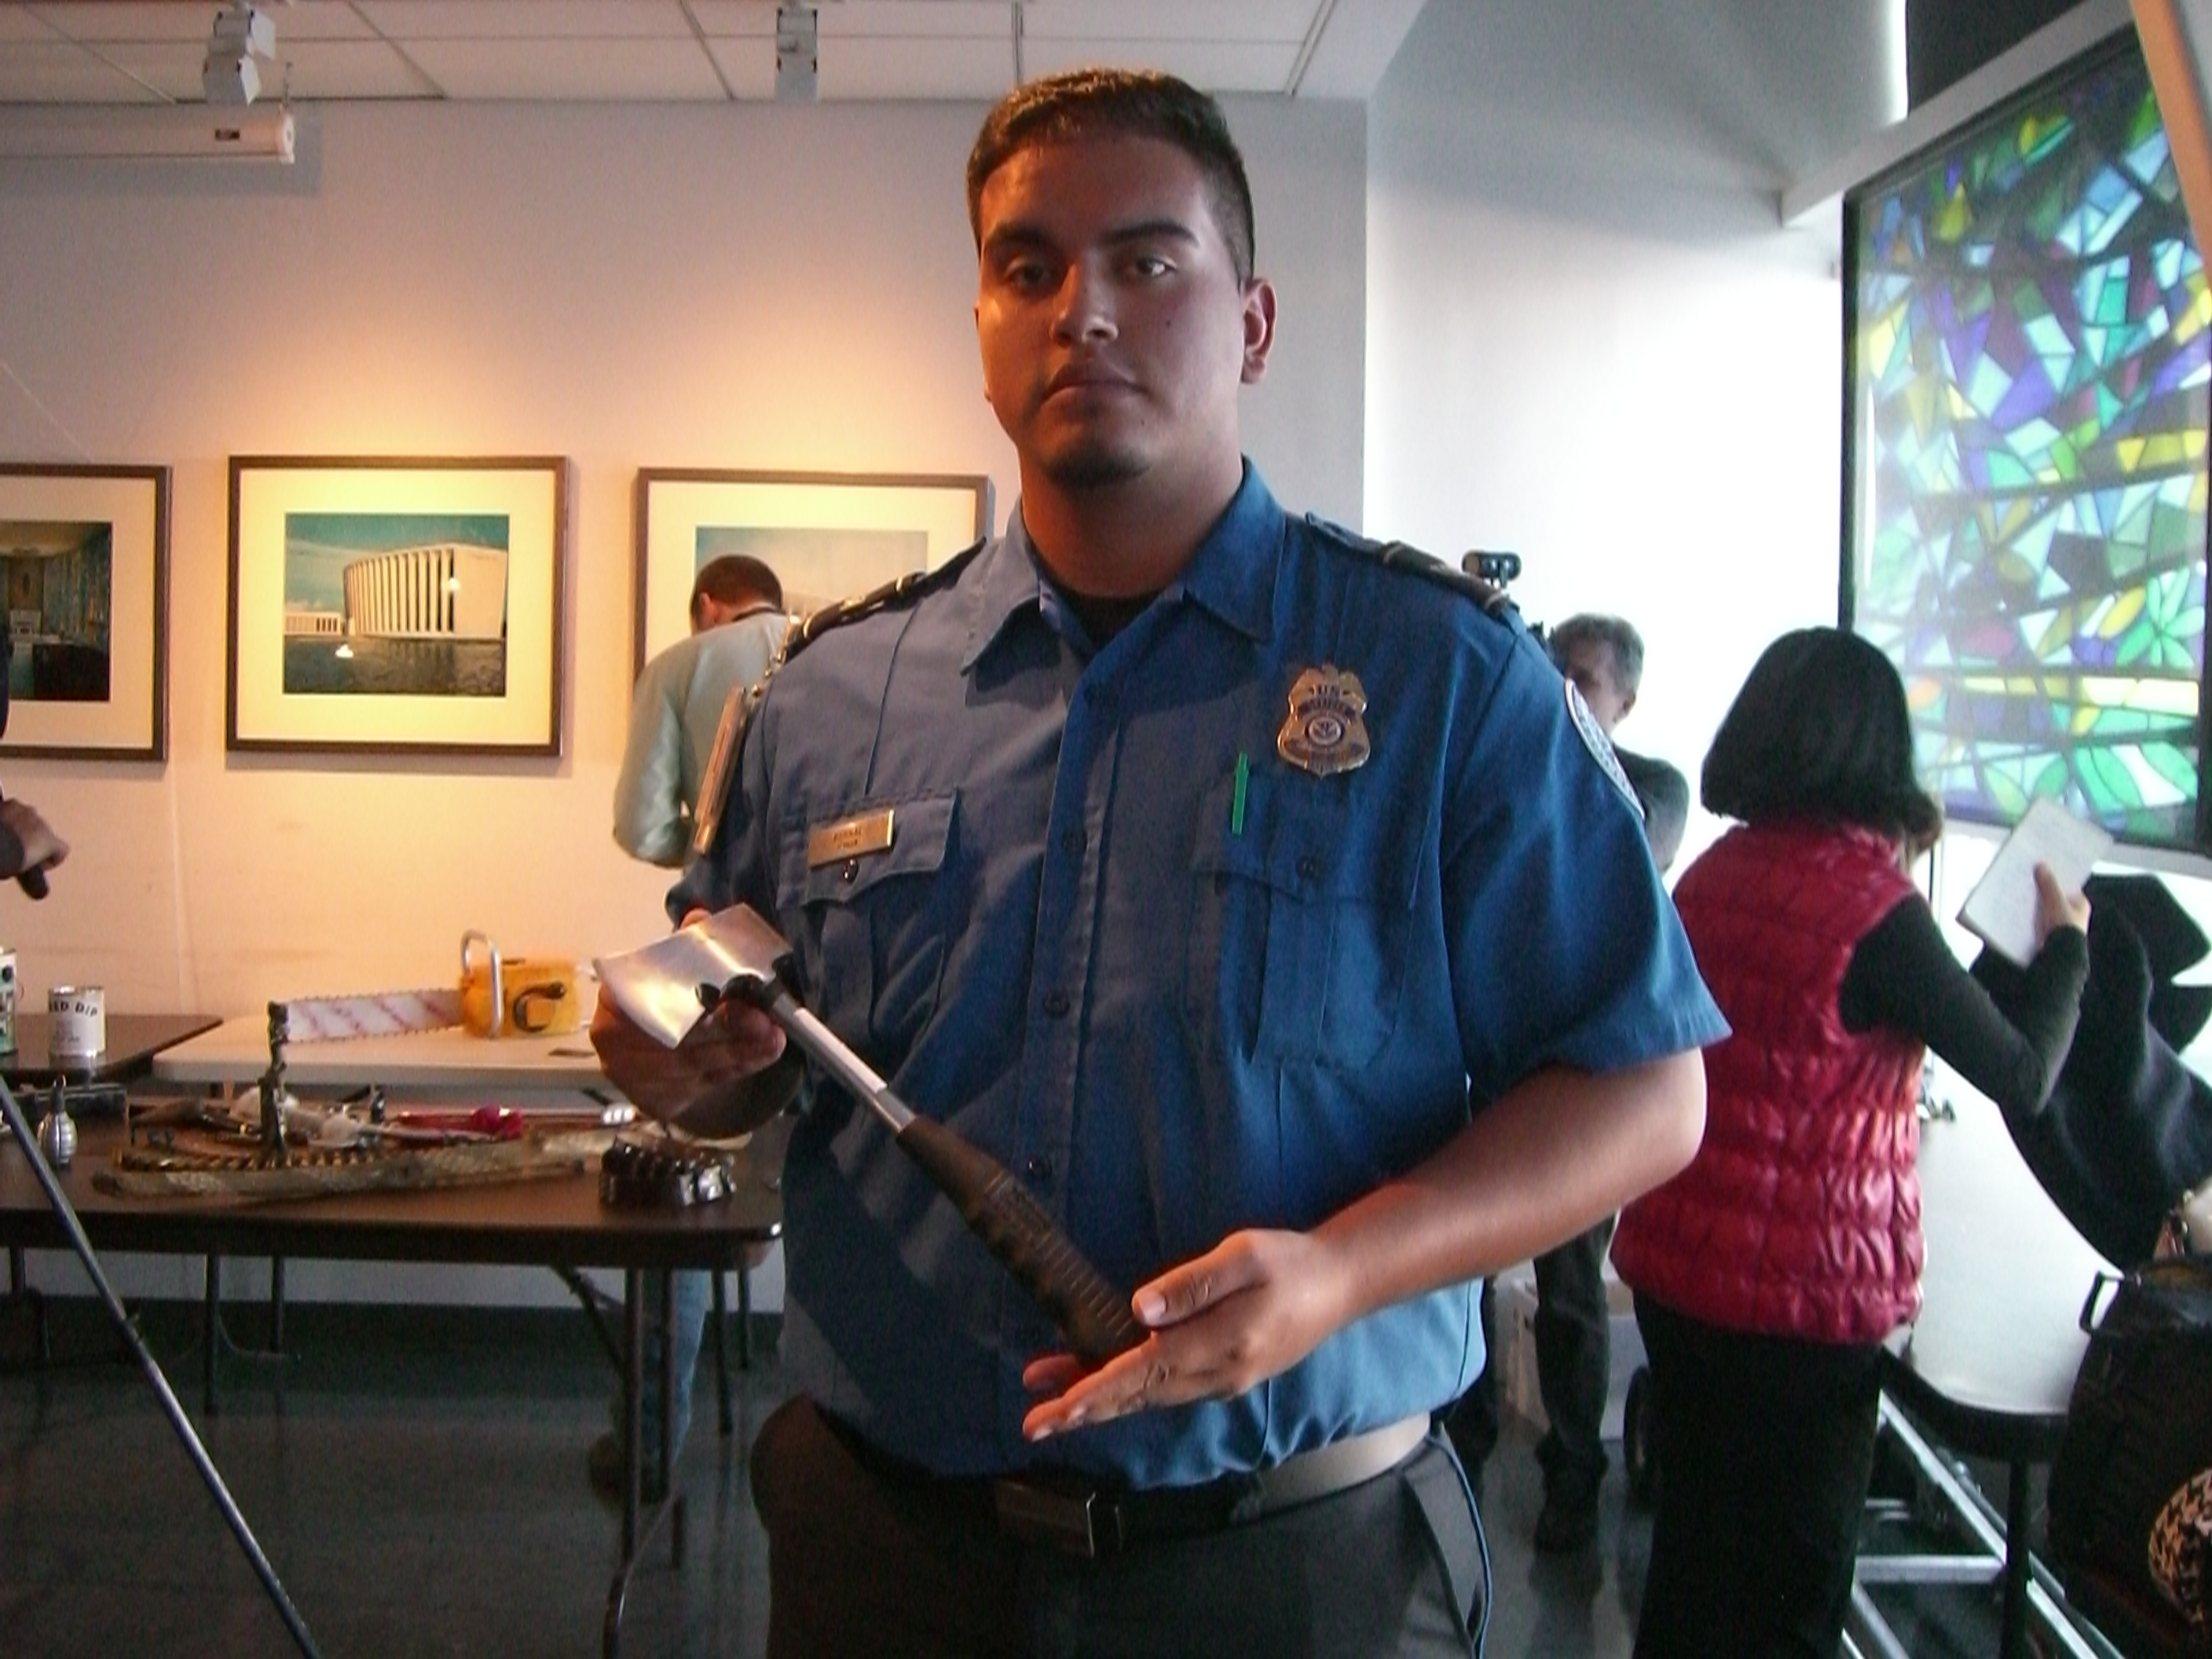 transportation security officer camilo bernal displays a hatchet that was surrendered by a passenger at a - Transportation Security Officer